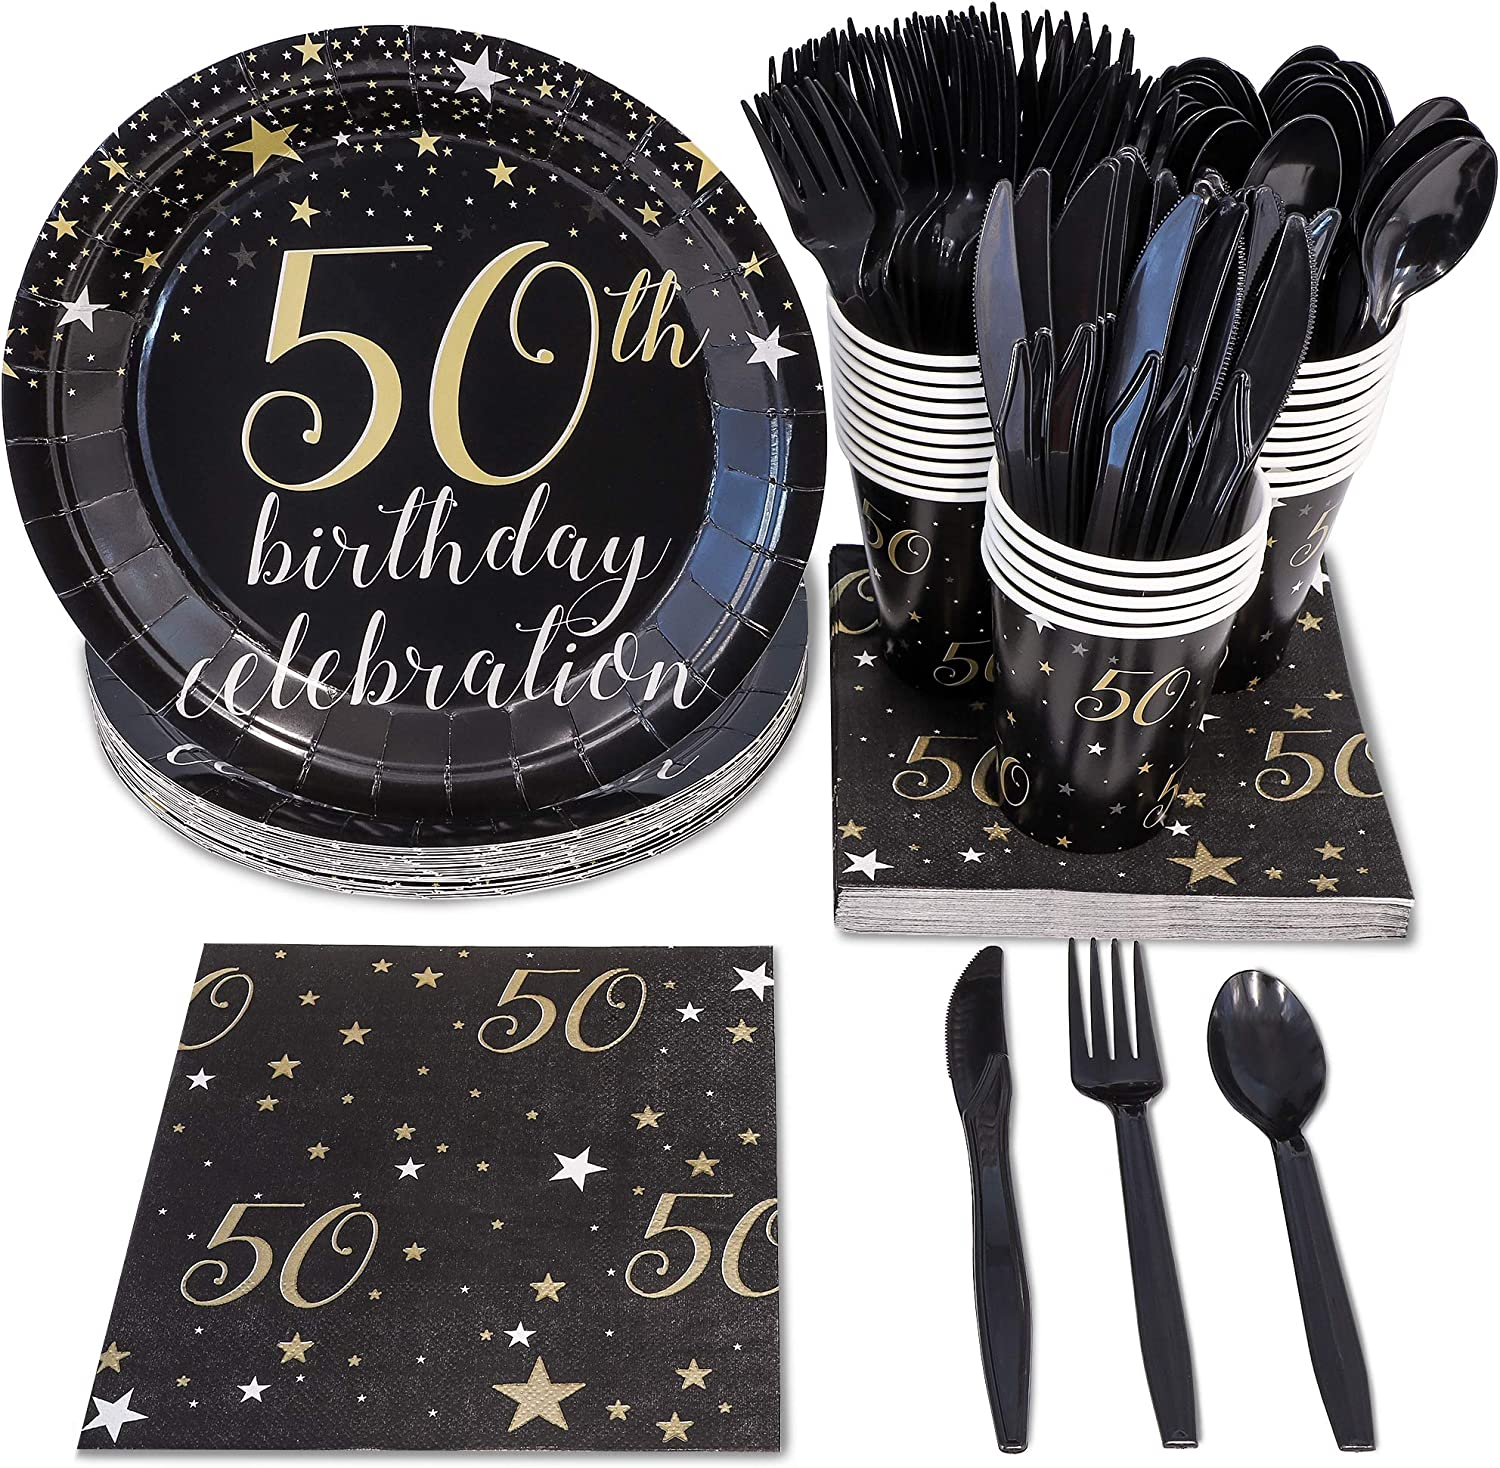 50th Birthday Party Bundle, Includes Plates, Napkins, Cups, and Cutlery (24 Guests,144 Pieces)